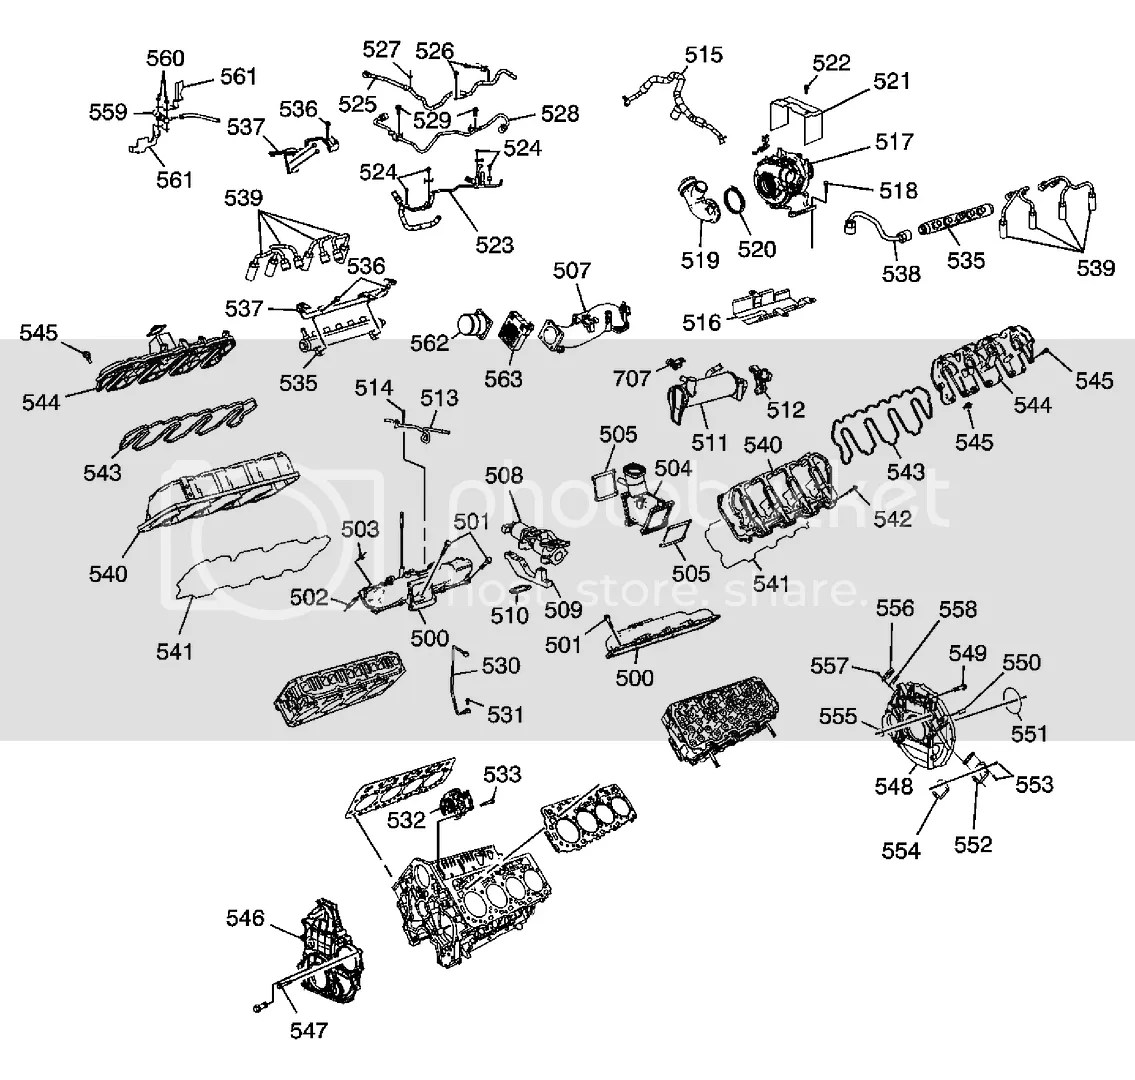 2012 diesel fuel system diagram dual voltage single phase motor wiring lbz chevy and gmc duramax forum